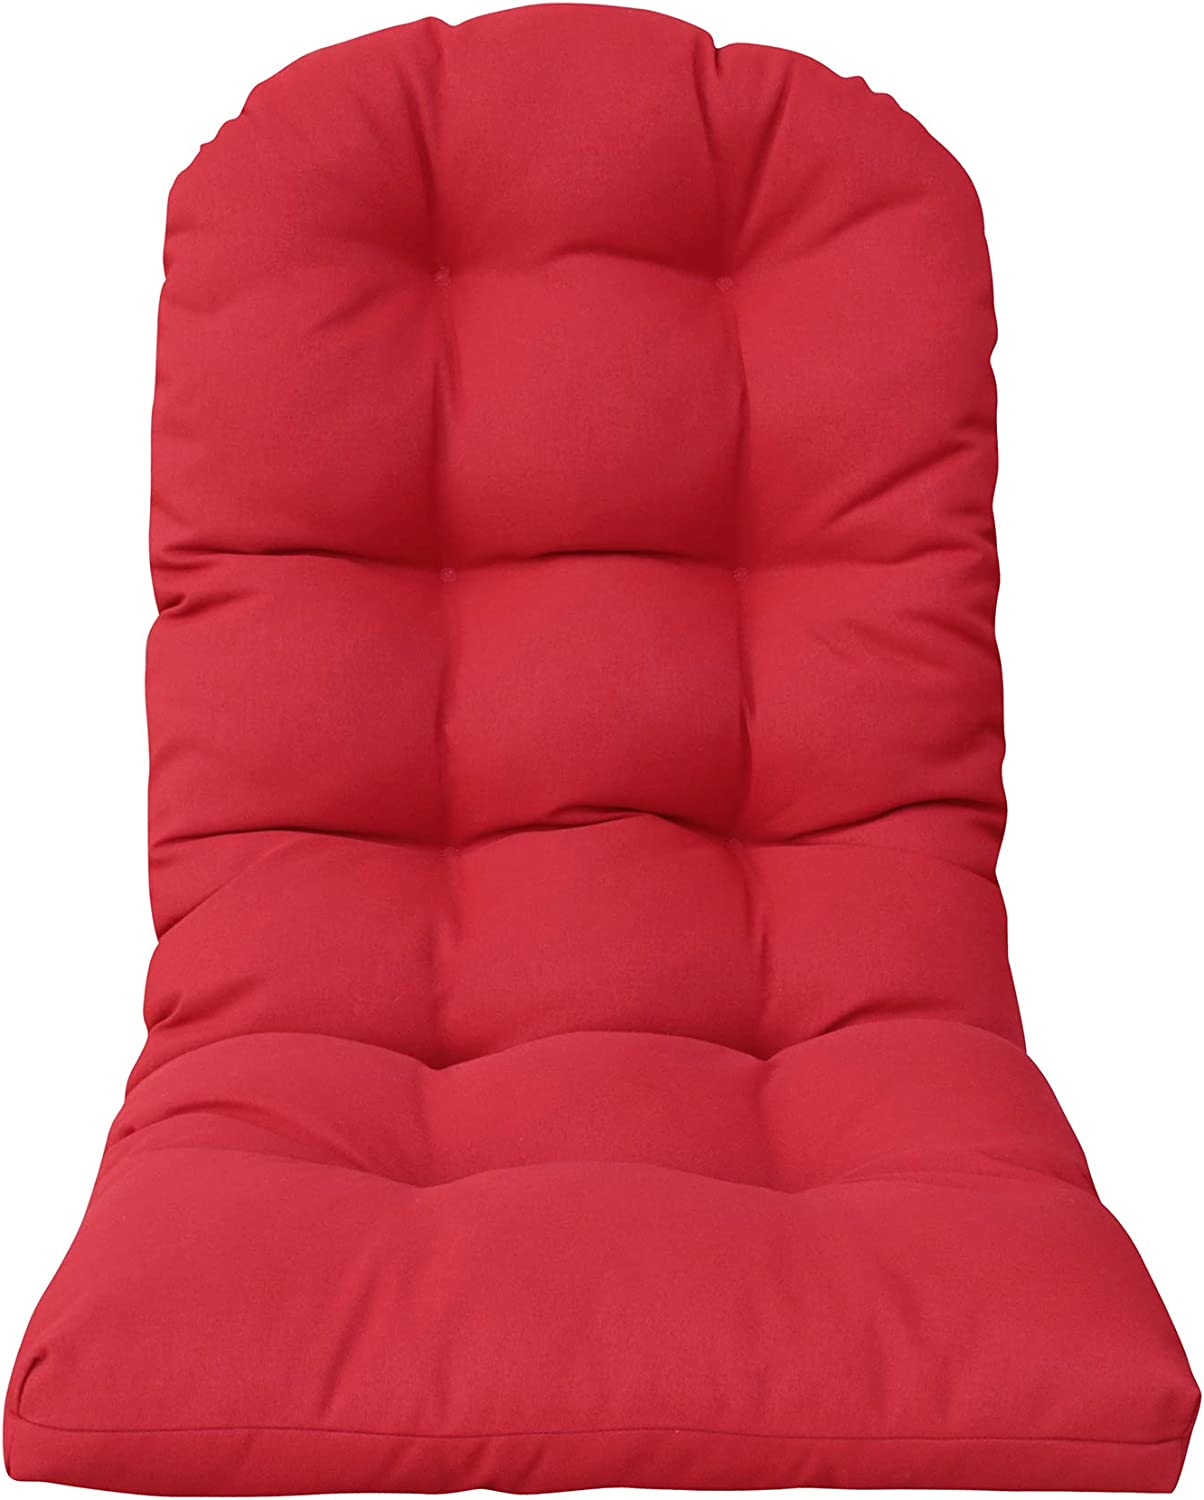 67% OFF of fixed price BOSSIMA Outdoor Patio Mail order Adirondack Chair Round Cushions Tufted Cor